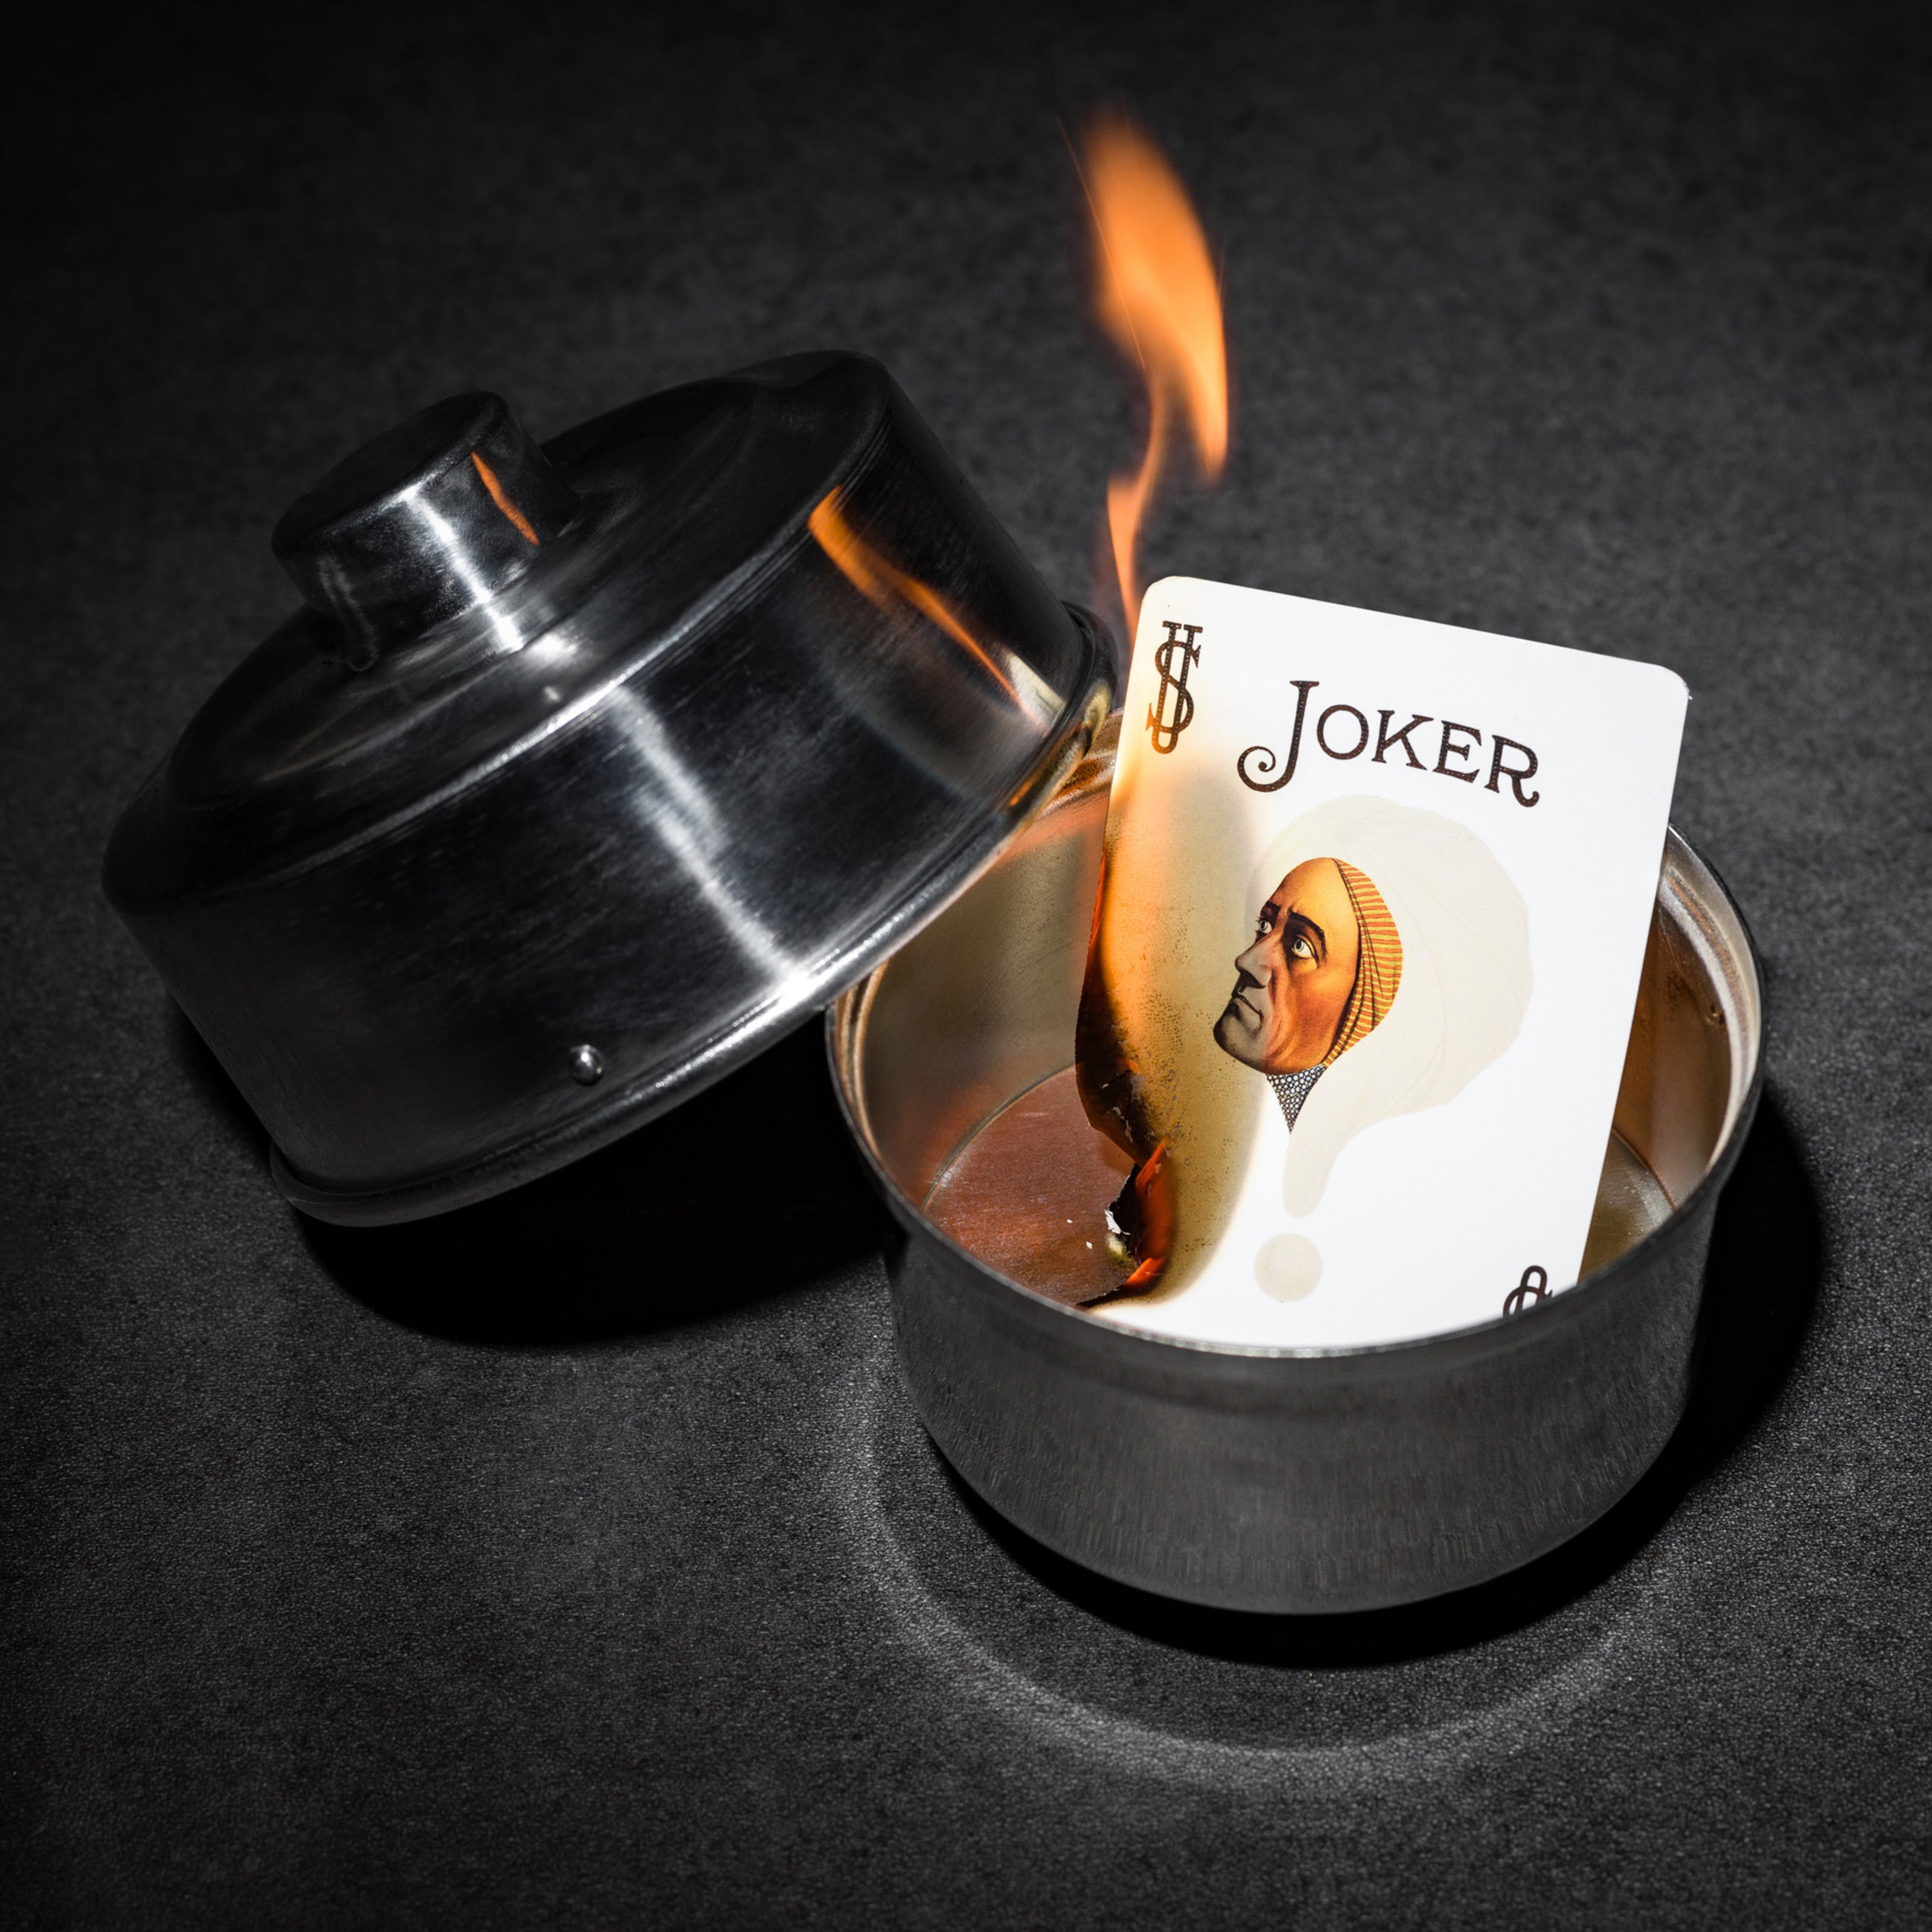 Photograph of a burning joker card in a silver dish. On the card is the face of the 1920s mind reader, Alexander.